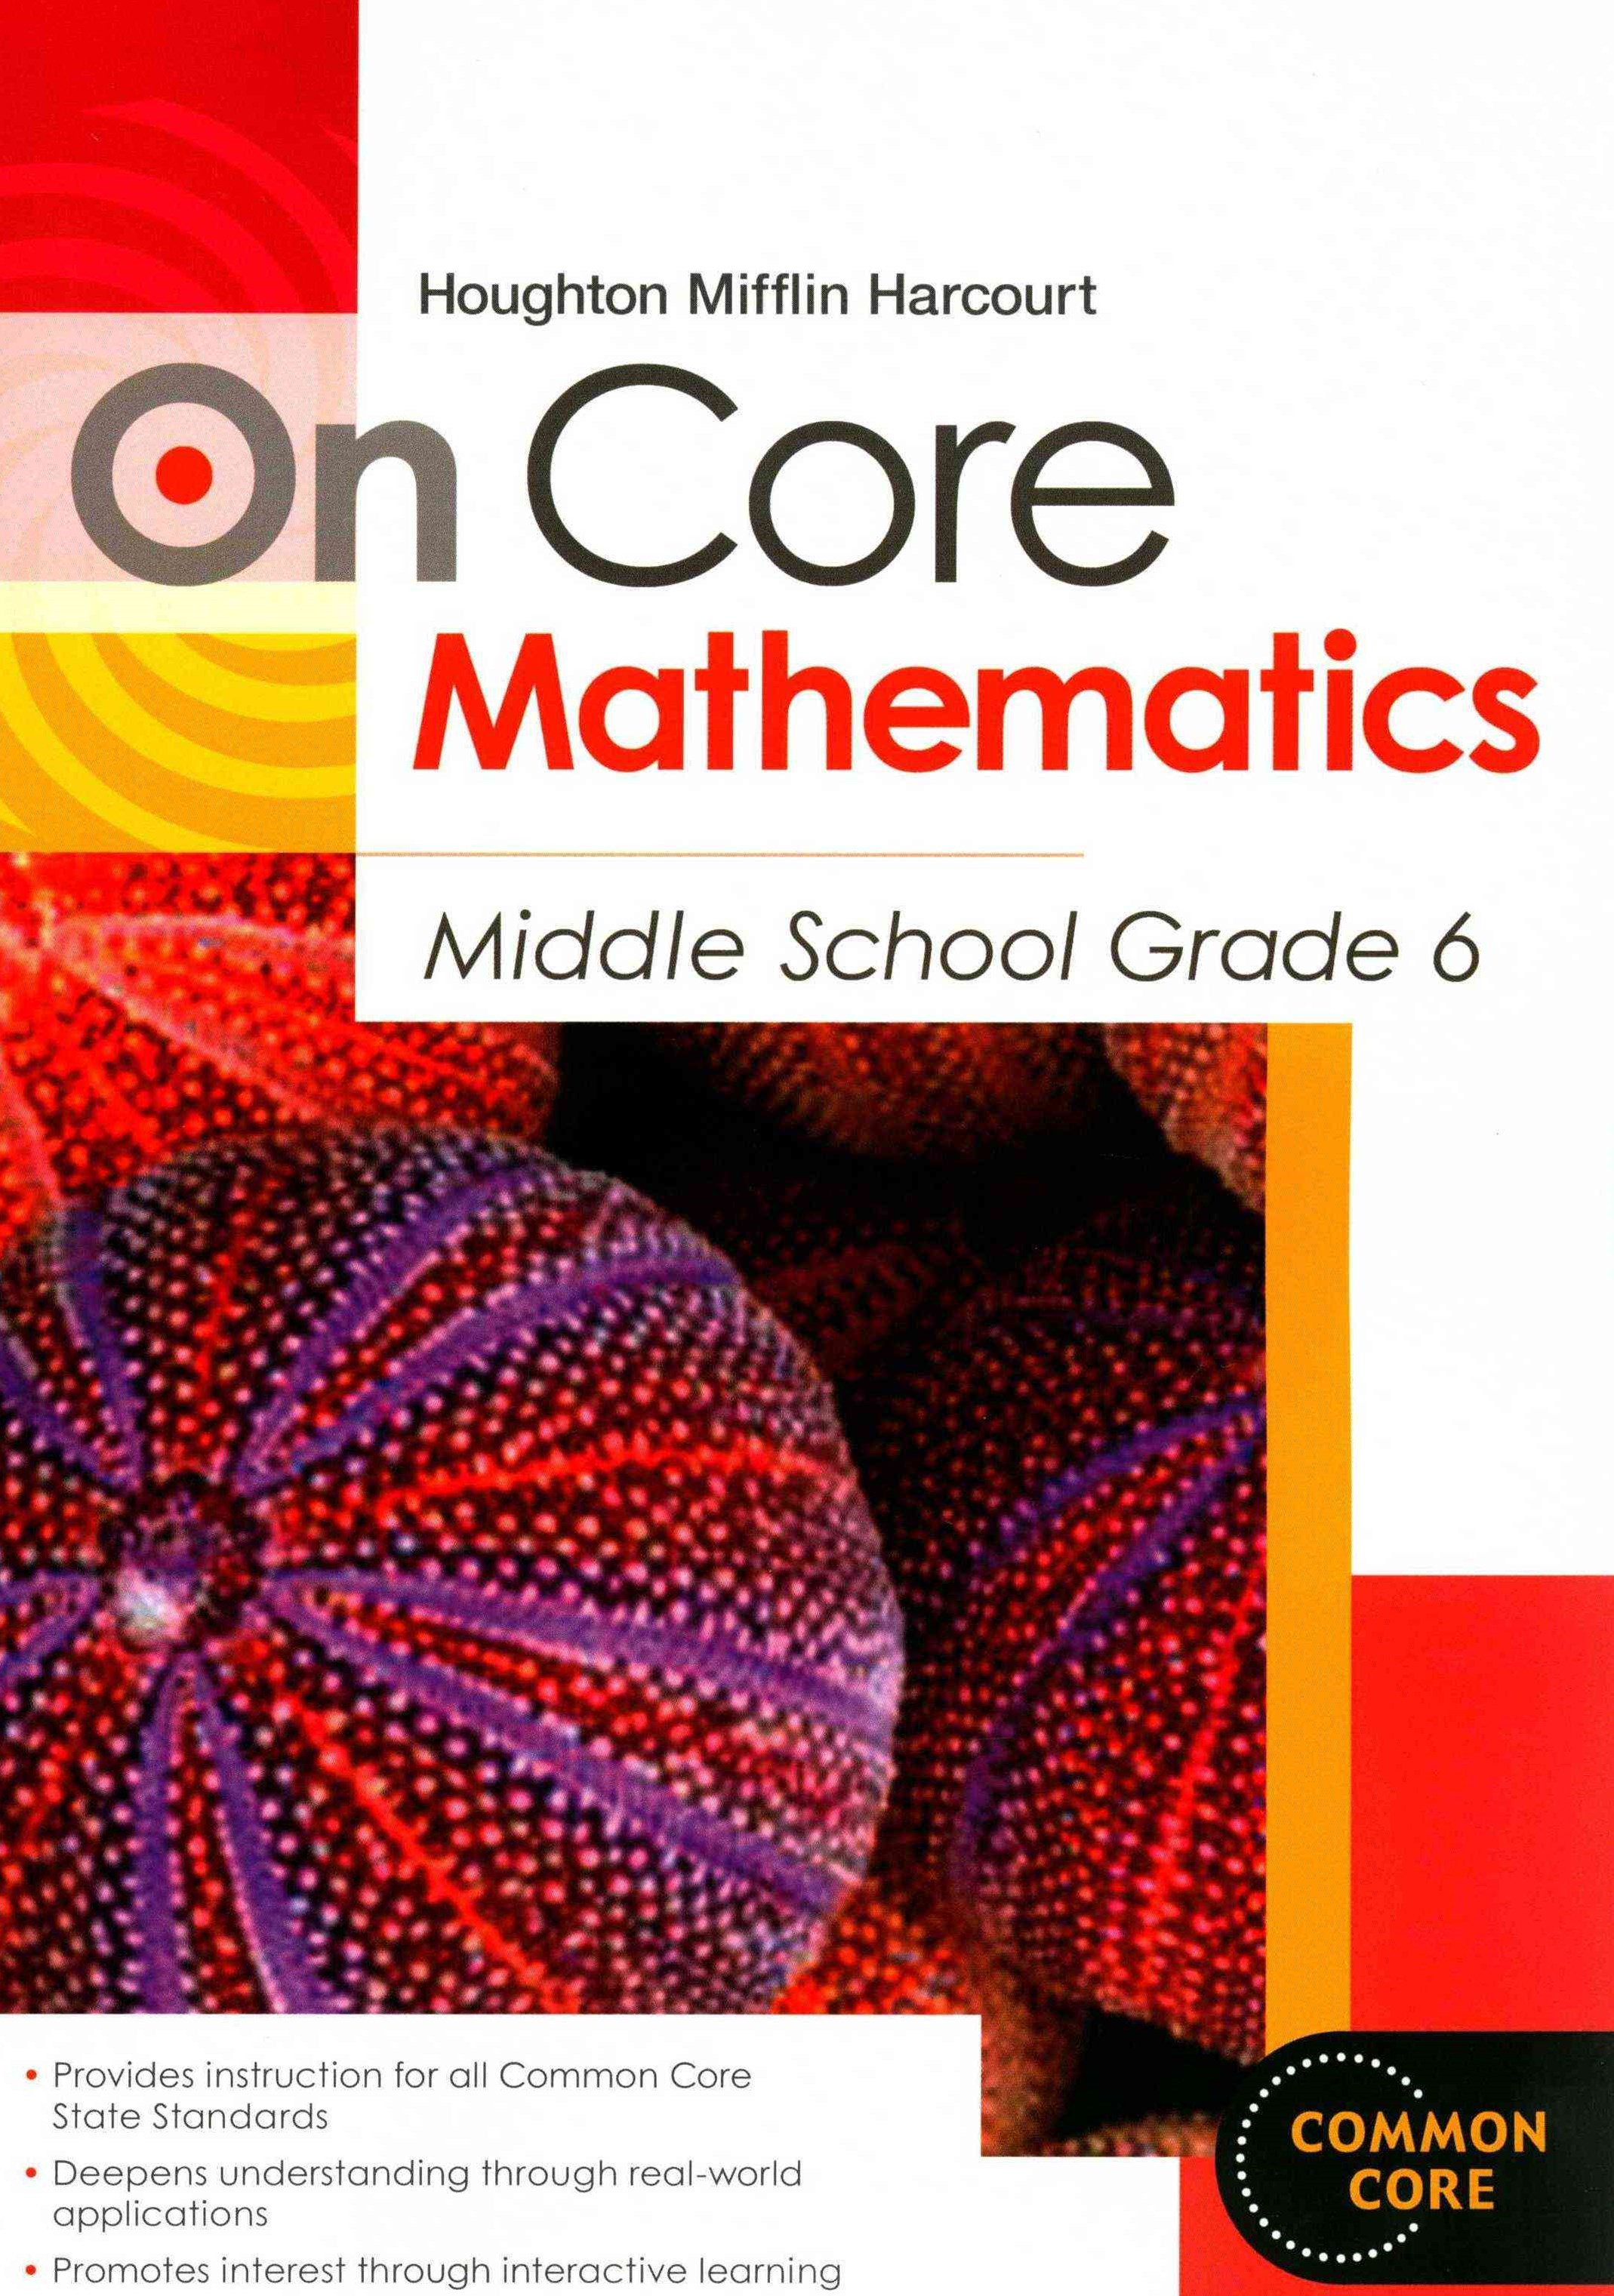 Holt McDougal Middle School Math Oncore